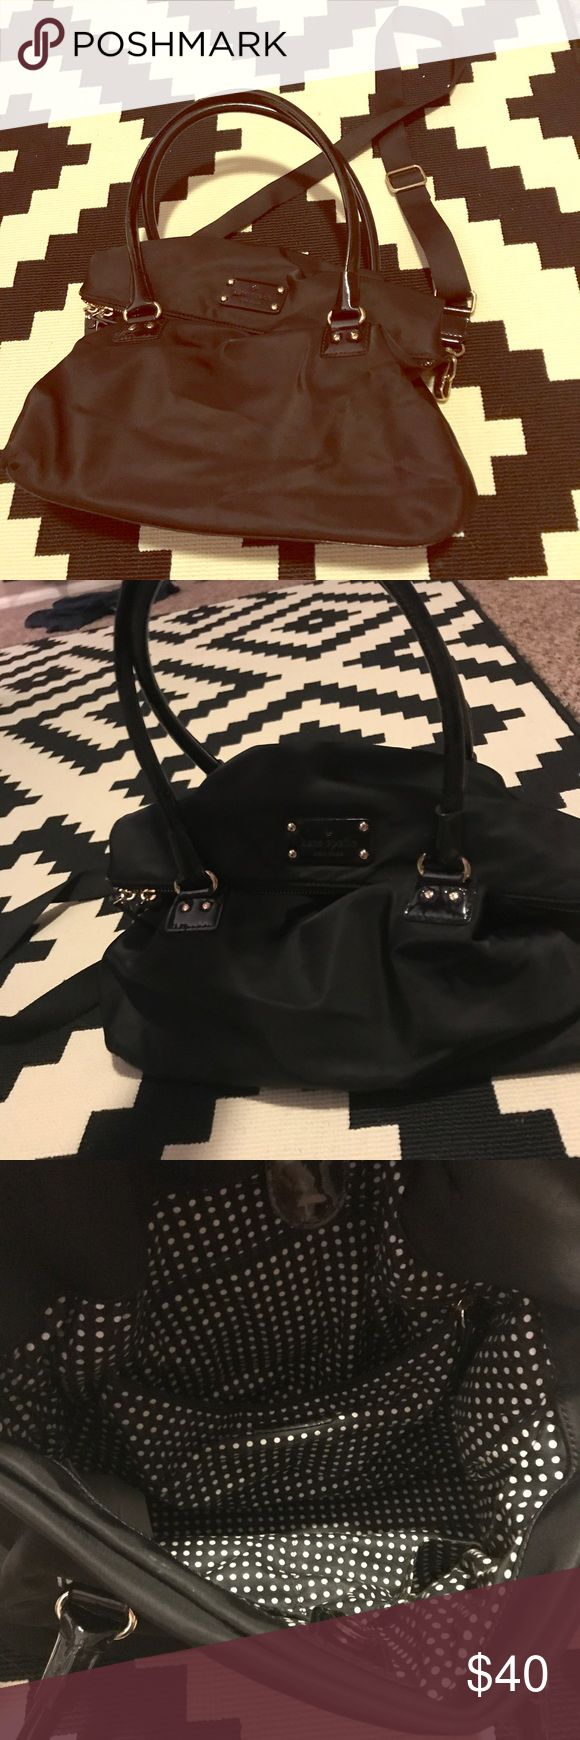 Kate Spade black nylon shoulder bag Kate Spade black nylon shoulder bag. Front flap with functional pocket. Polka dot fabric interior and printed logo bottom. Removable long strap is great for carrying this as a crossbody tote! kate spade Bags